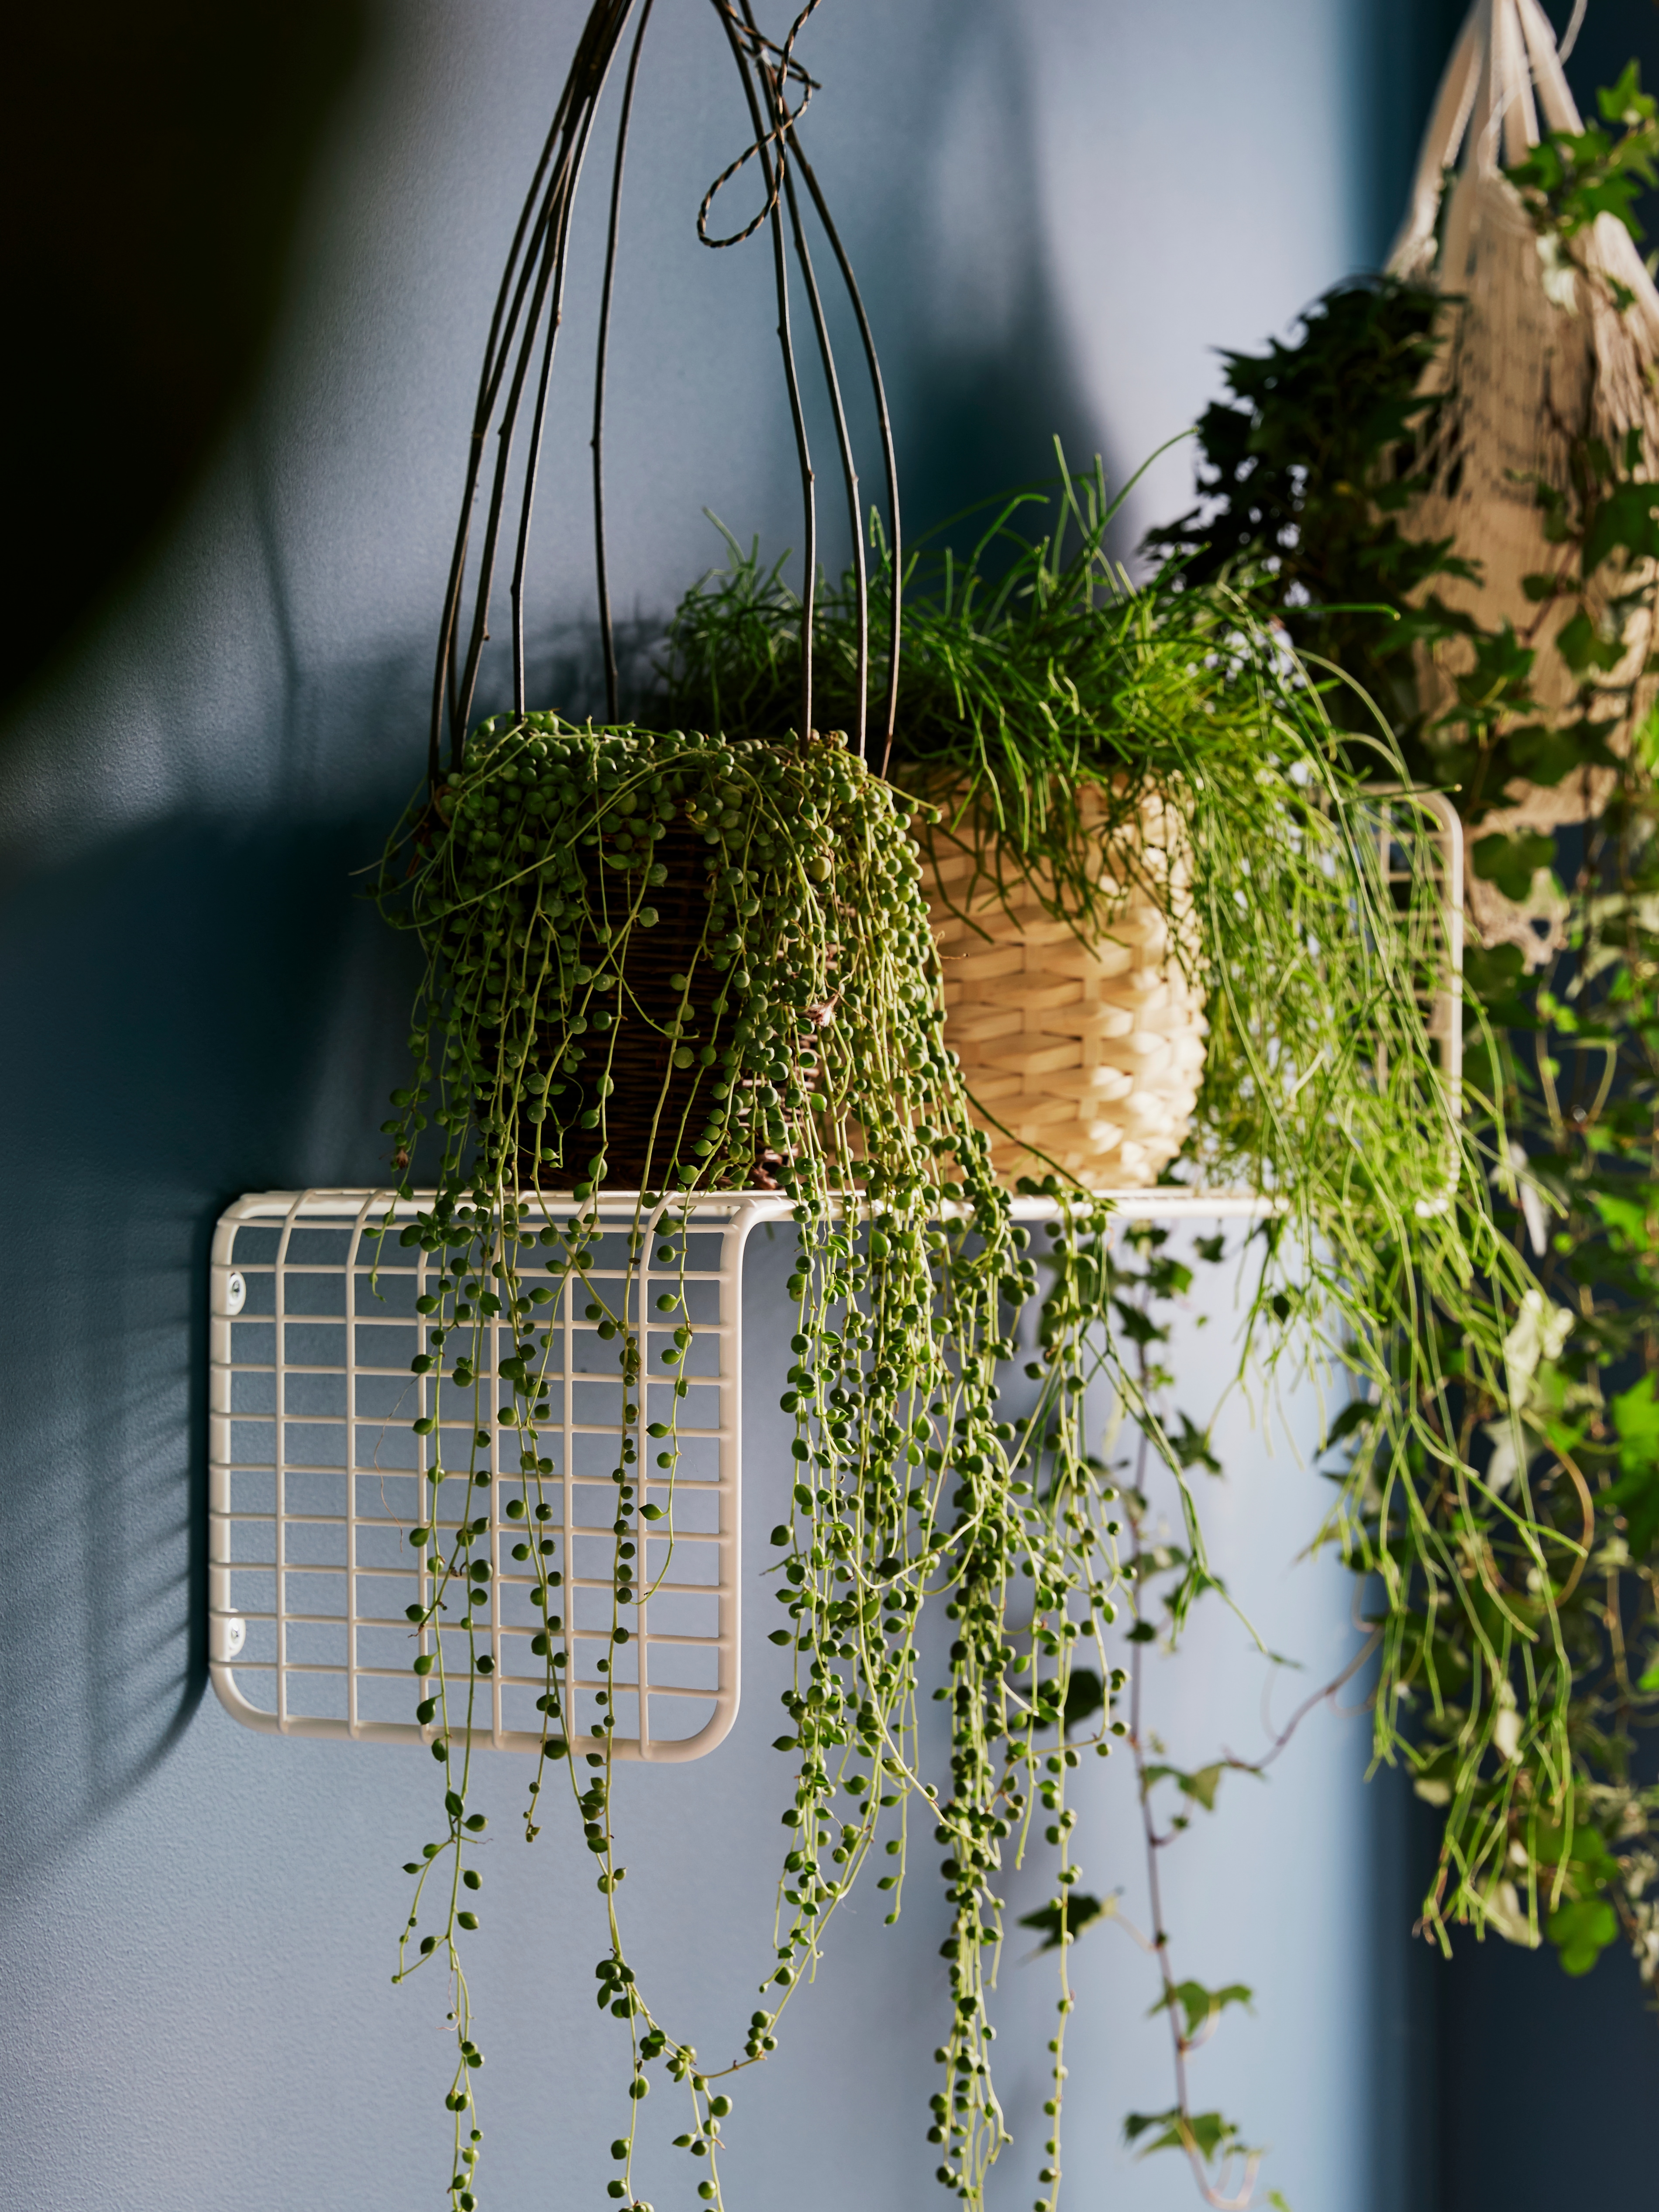 Close-up of a white SVENSHULT wall shelf holding up several trailing plants in a dark grey room.